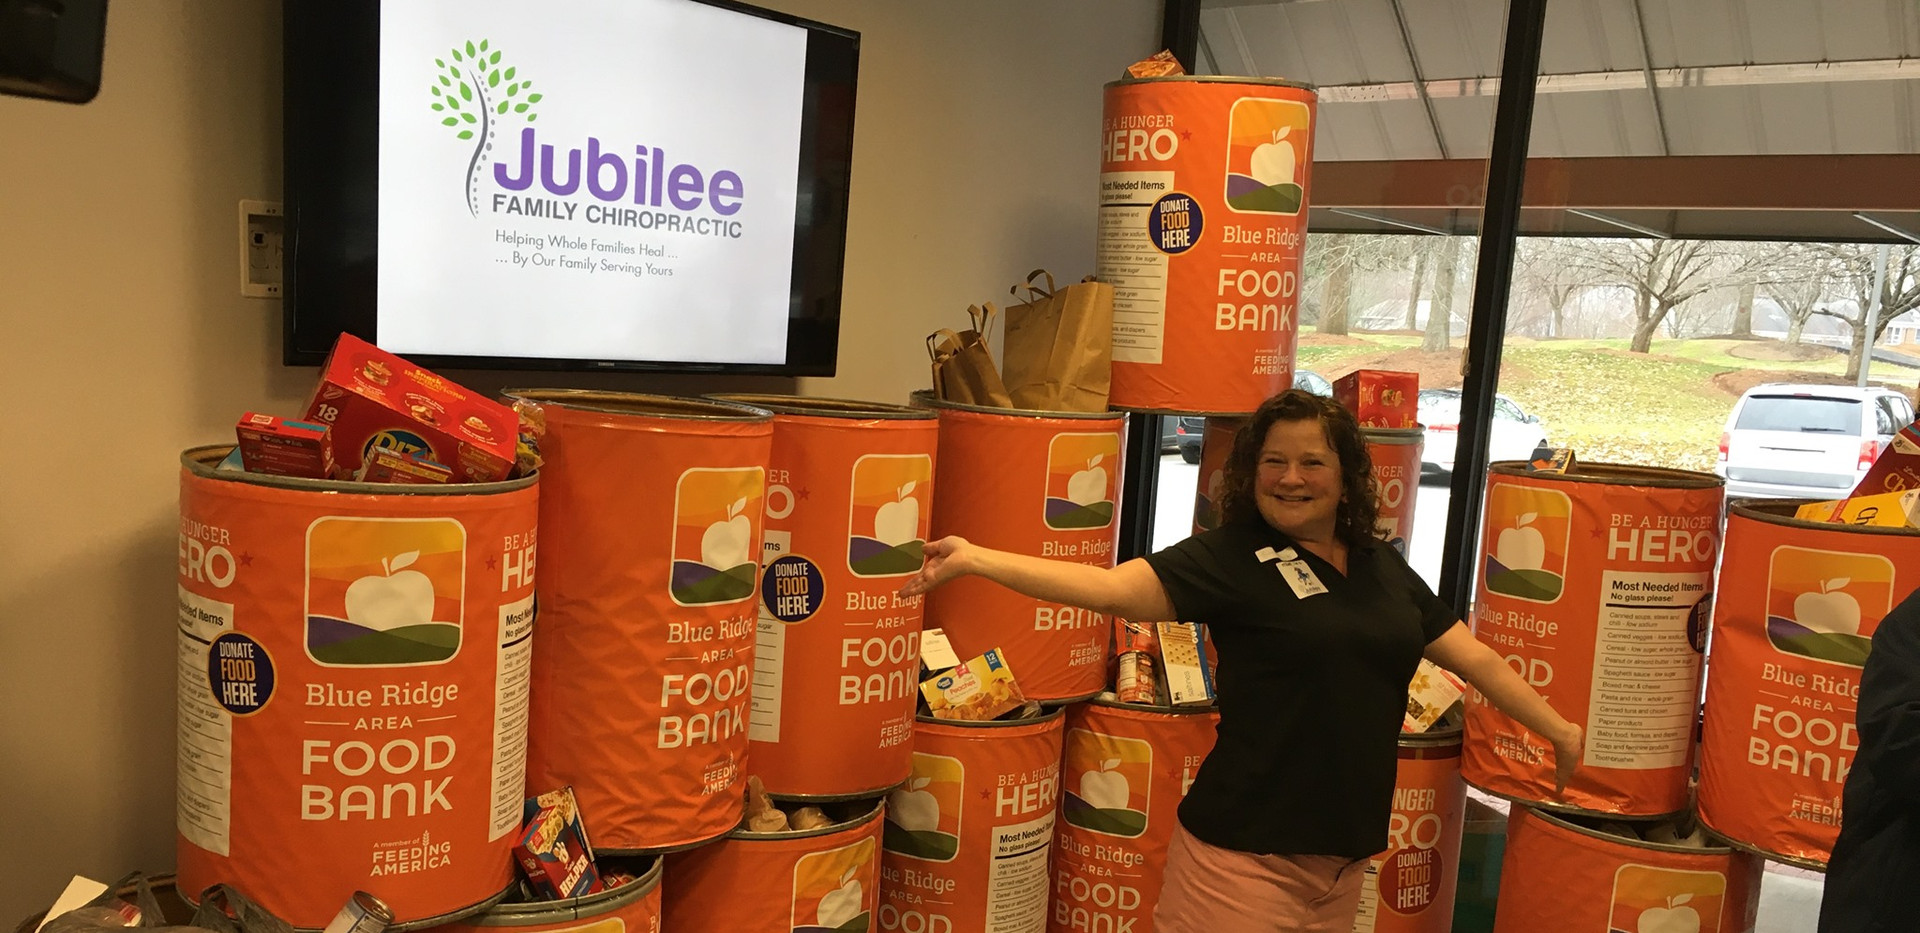 Jubilee Family Chiropractic 2020 Blue Ridge Food Drive. 011